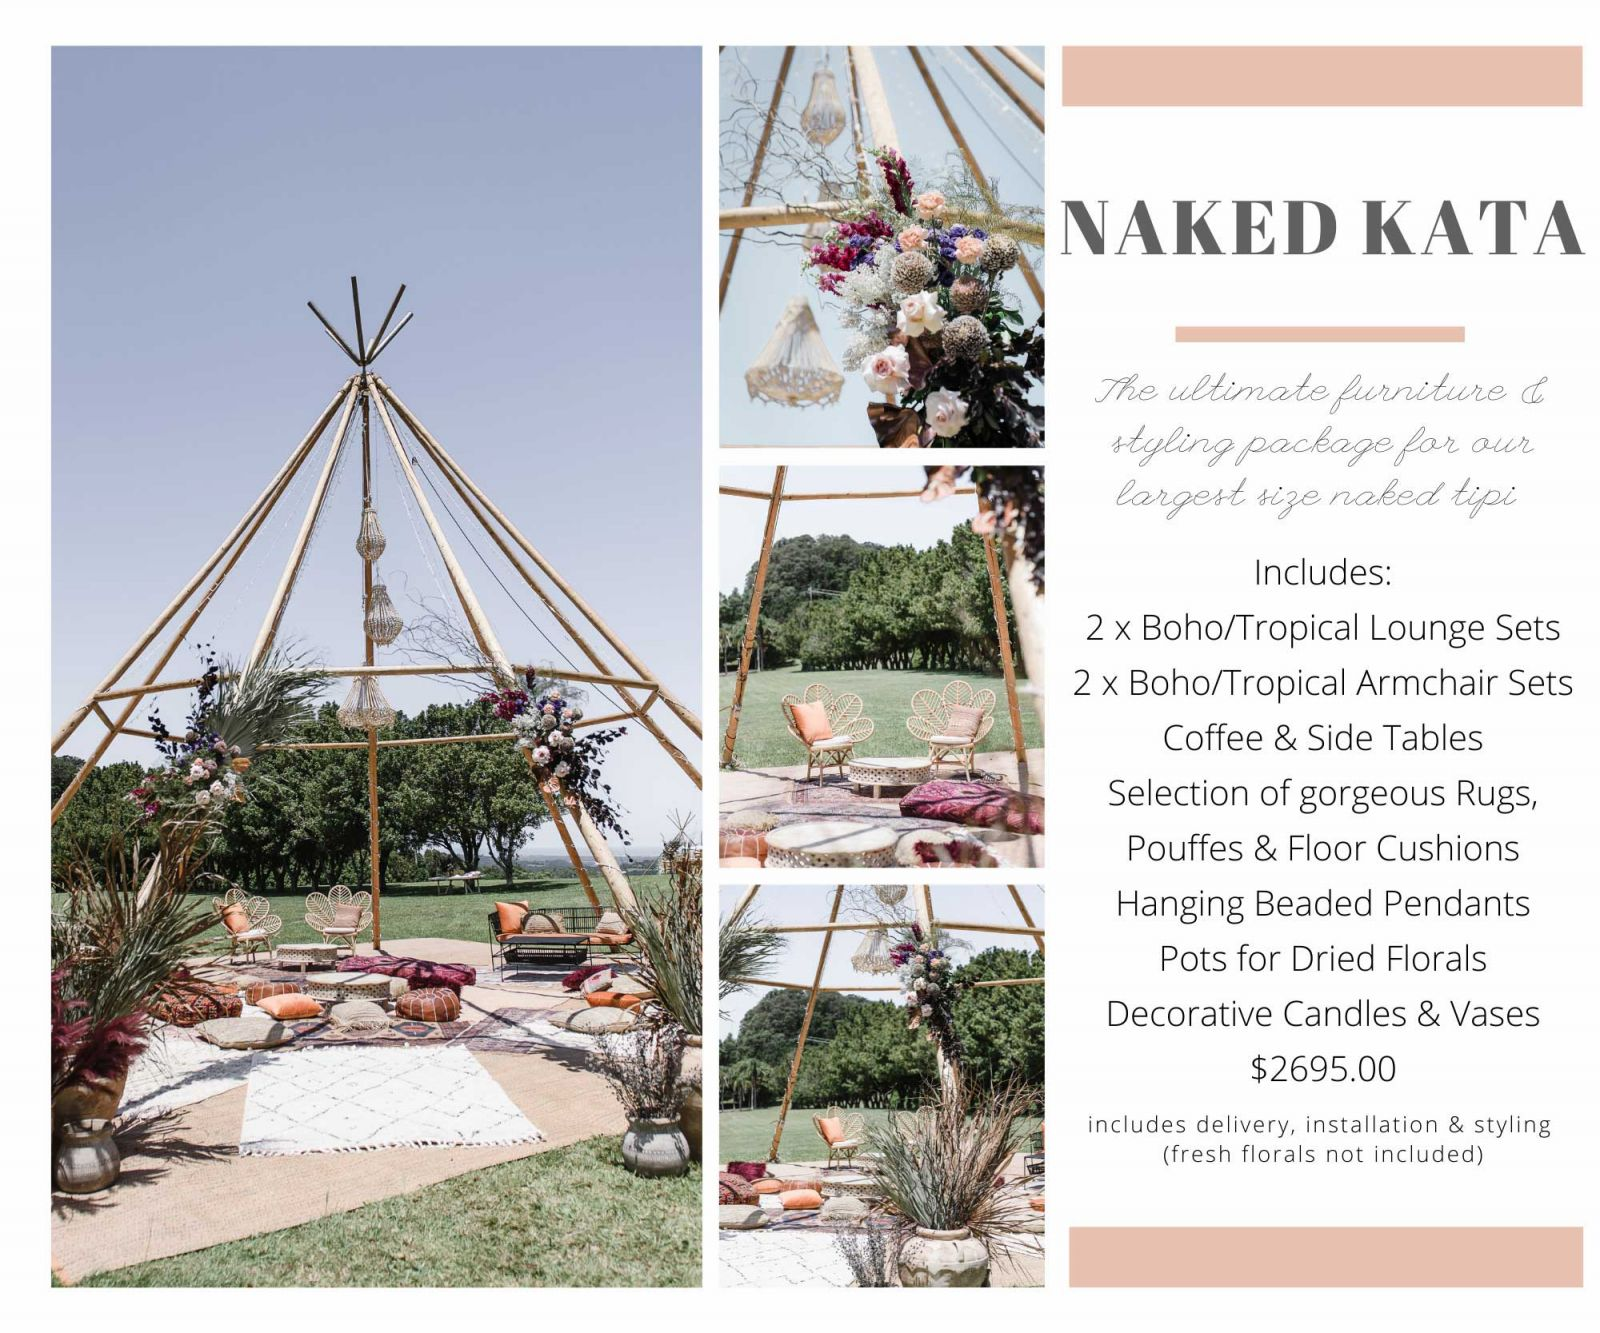 Tipi furniture & styling packages